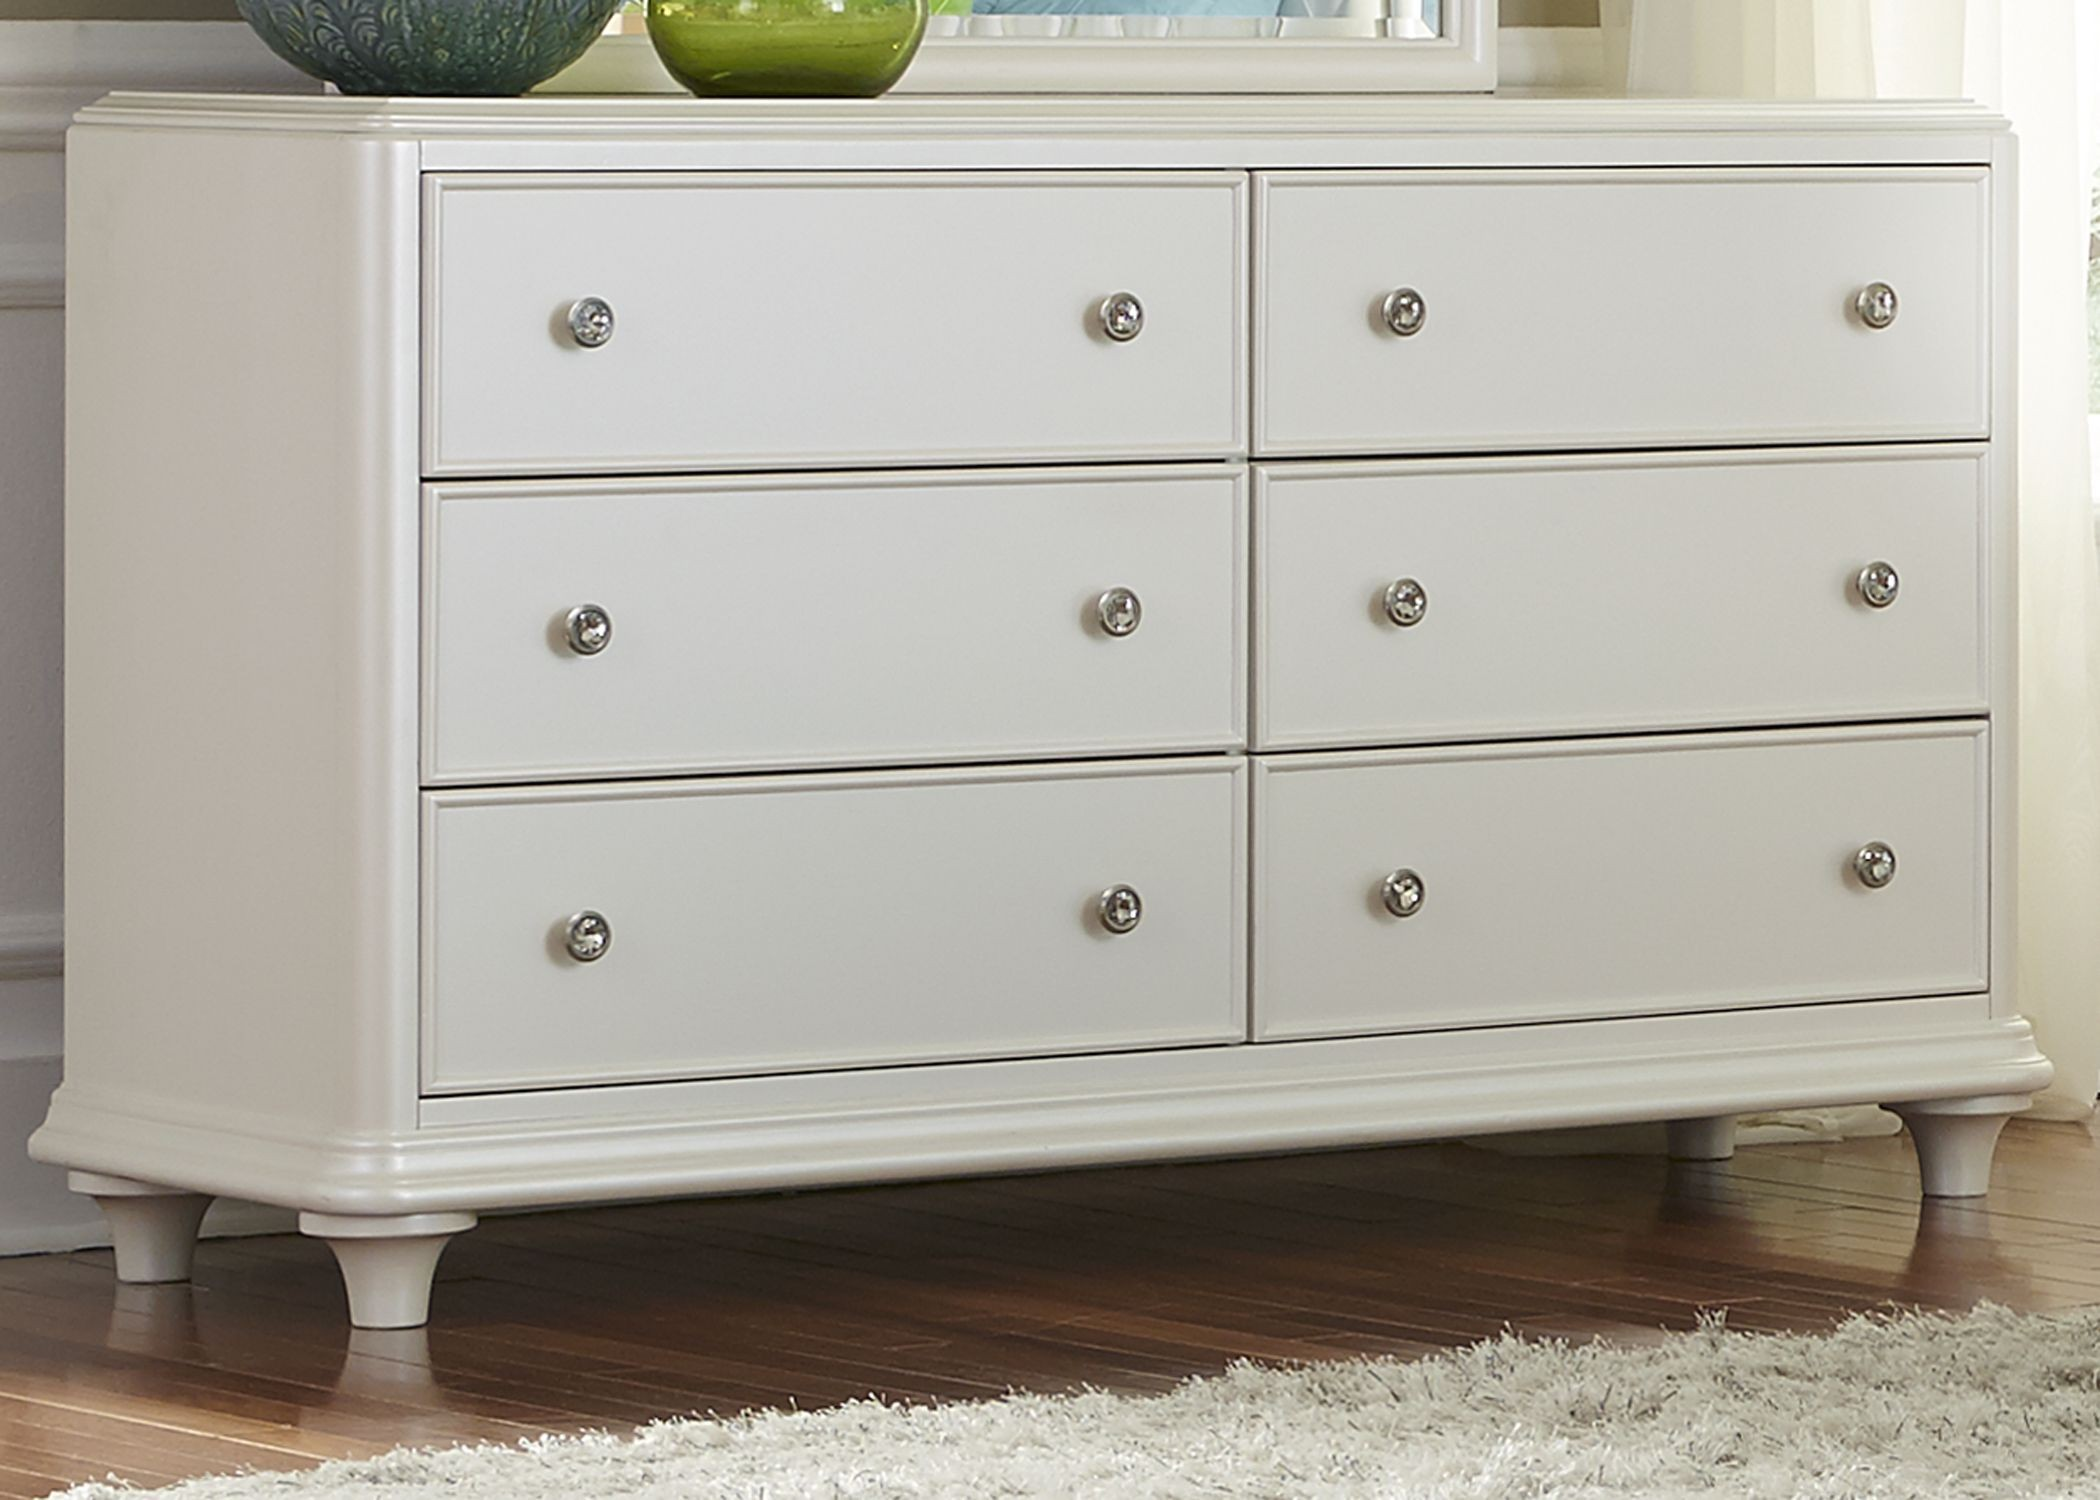 Stardust Iridescent White 6 Drawer Dresser